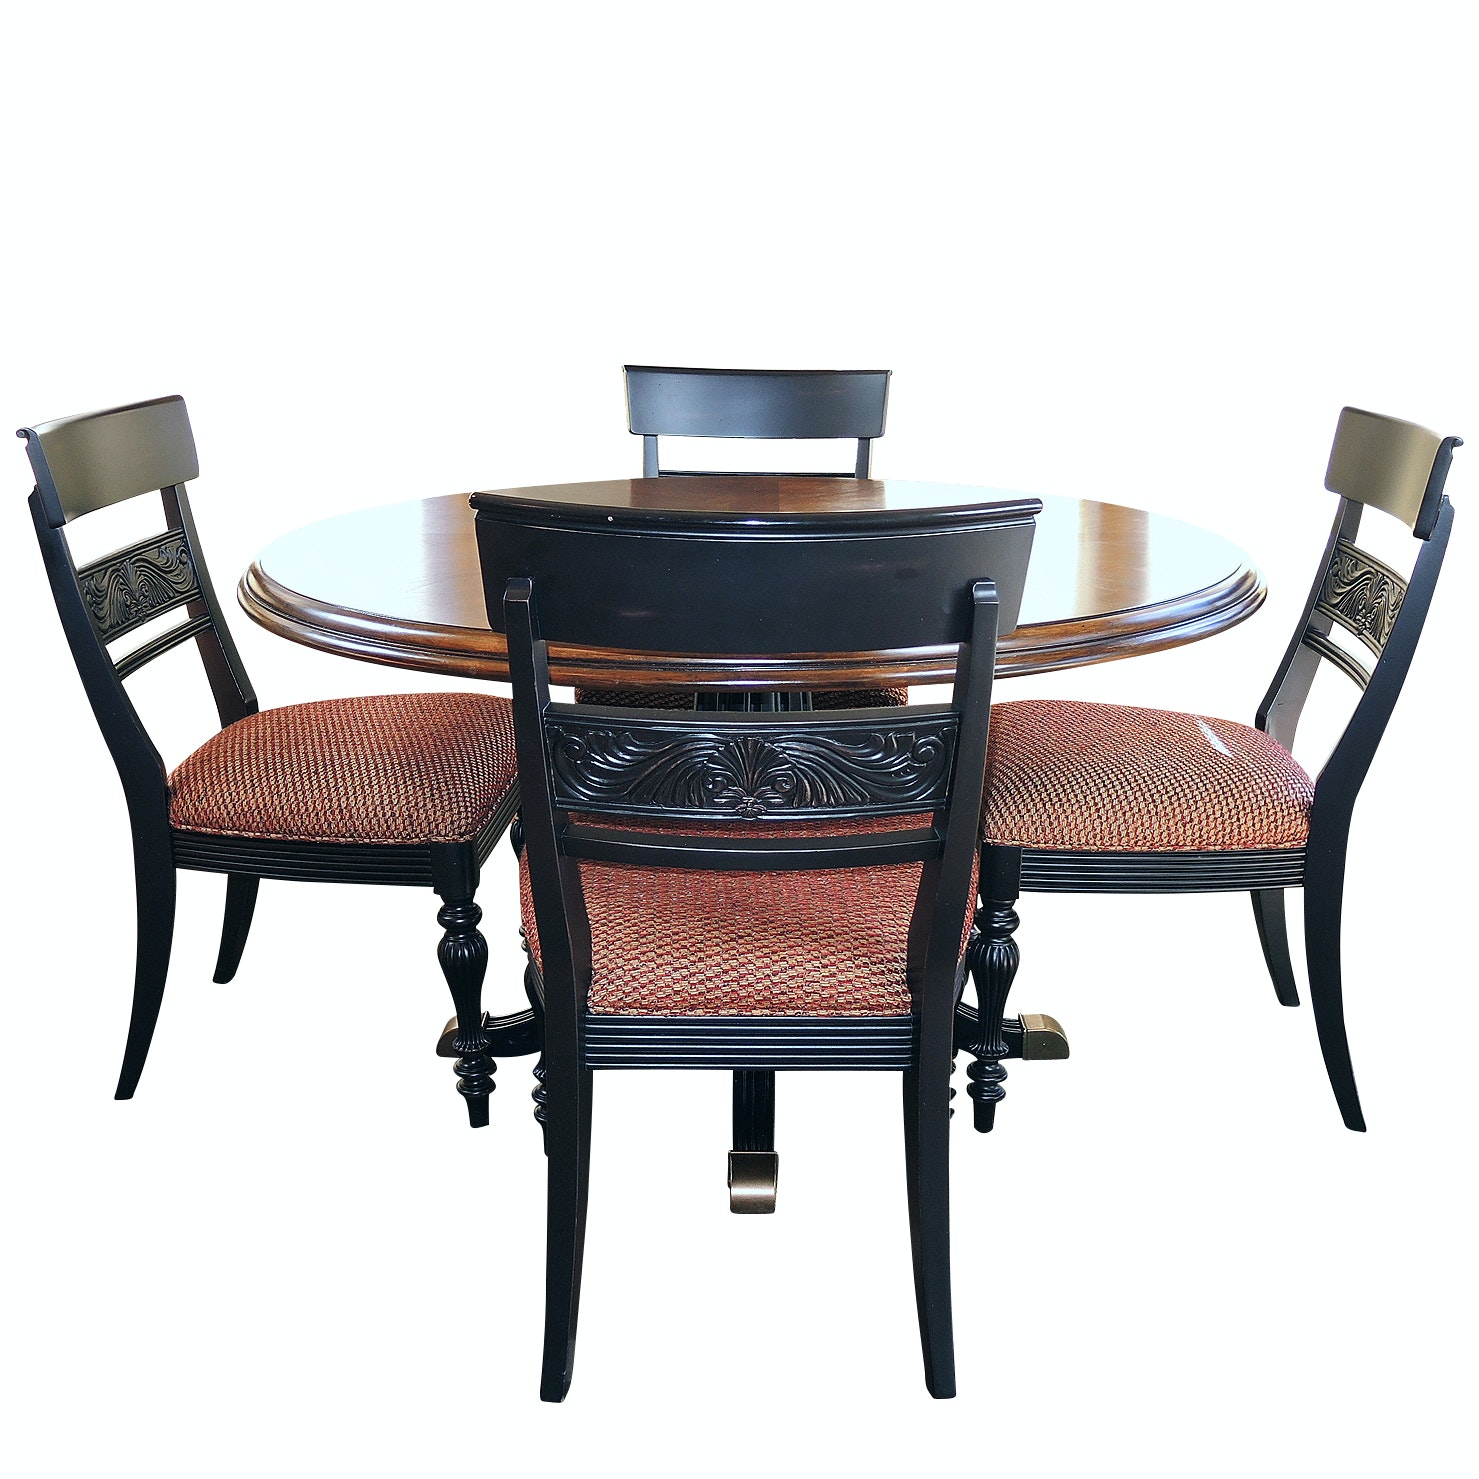 Drexel Pedestal Dining Table and Ethan Allen Side Chairs, Contemporary